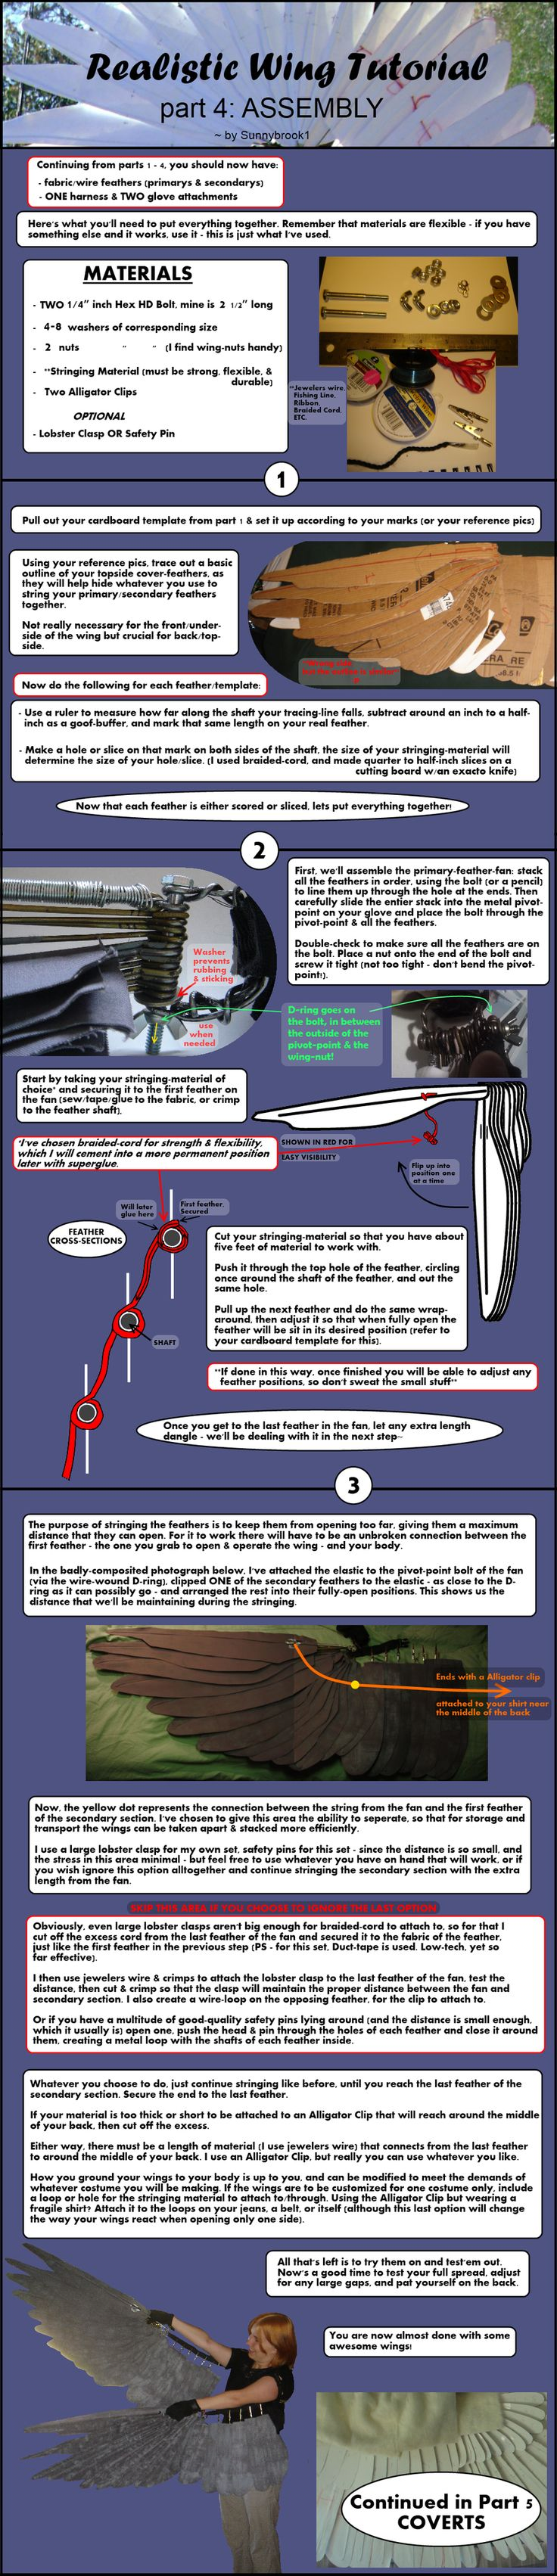 Realistic Wing Tutorial - P.4 by Sunnybrook1 on deviantART